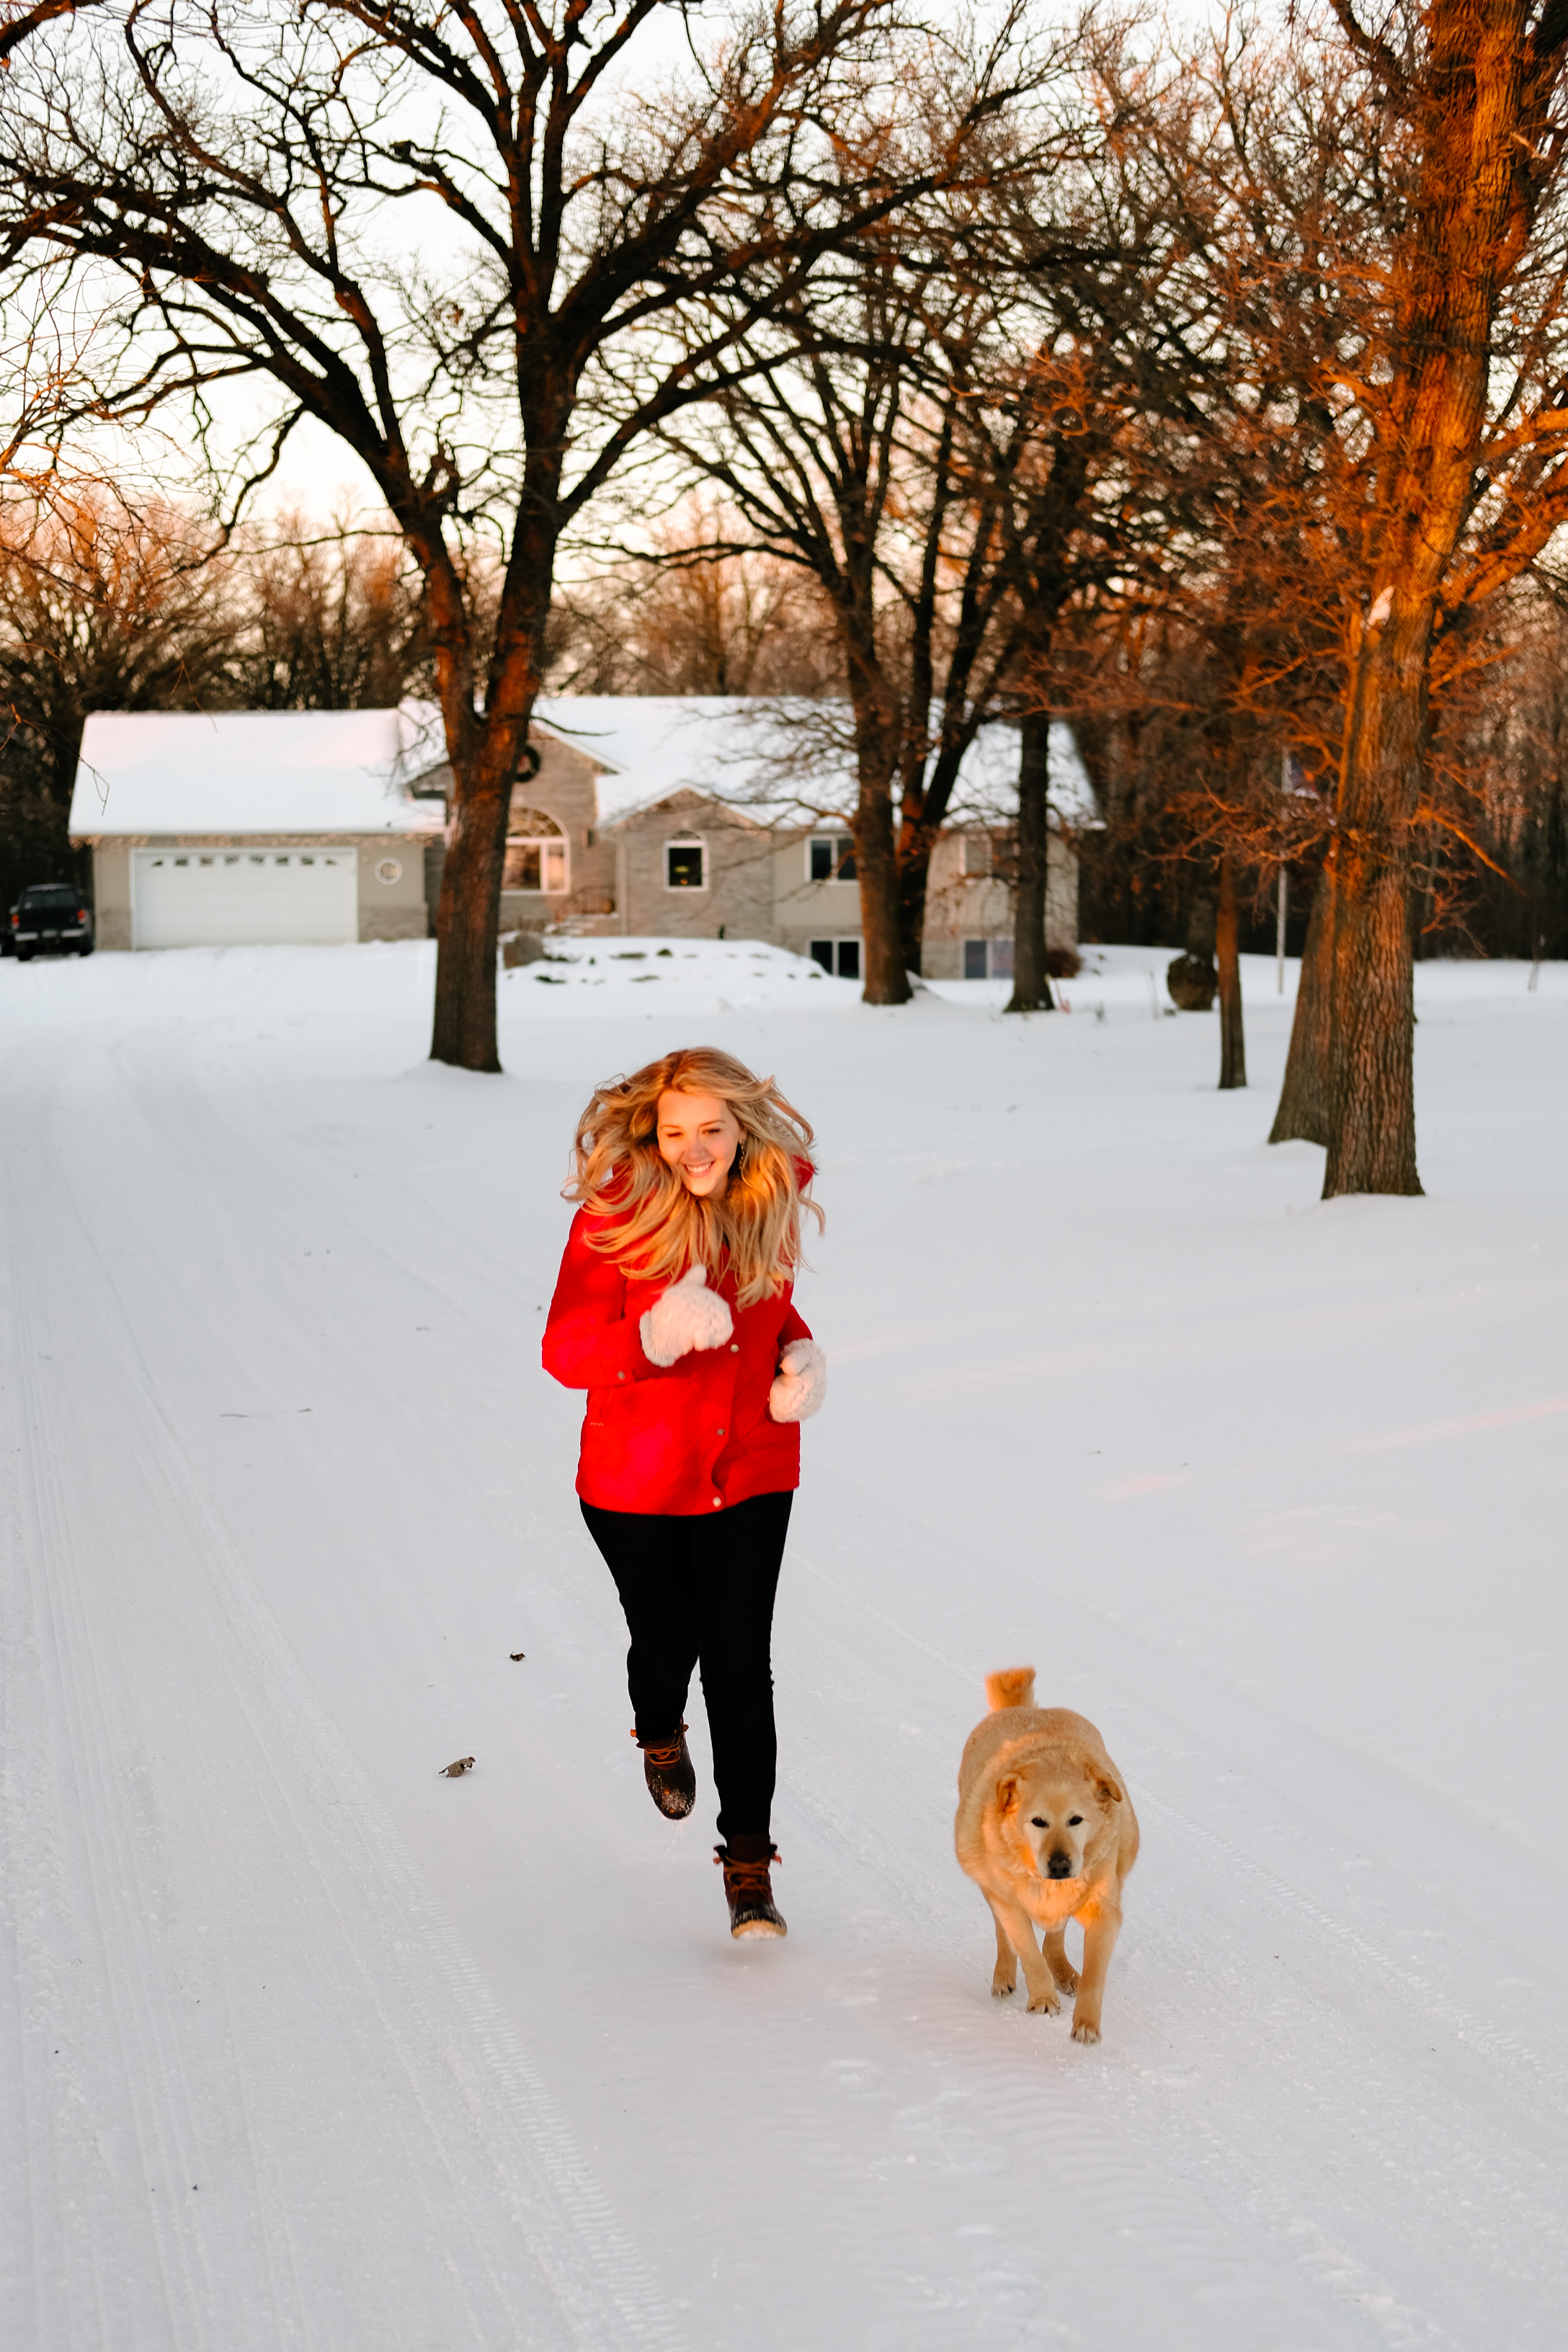 Debora Dahl running in the snow with a dog